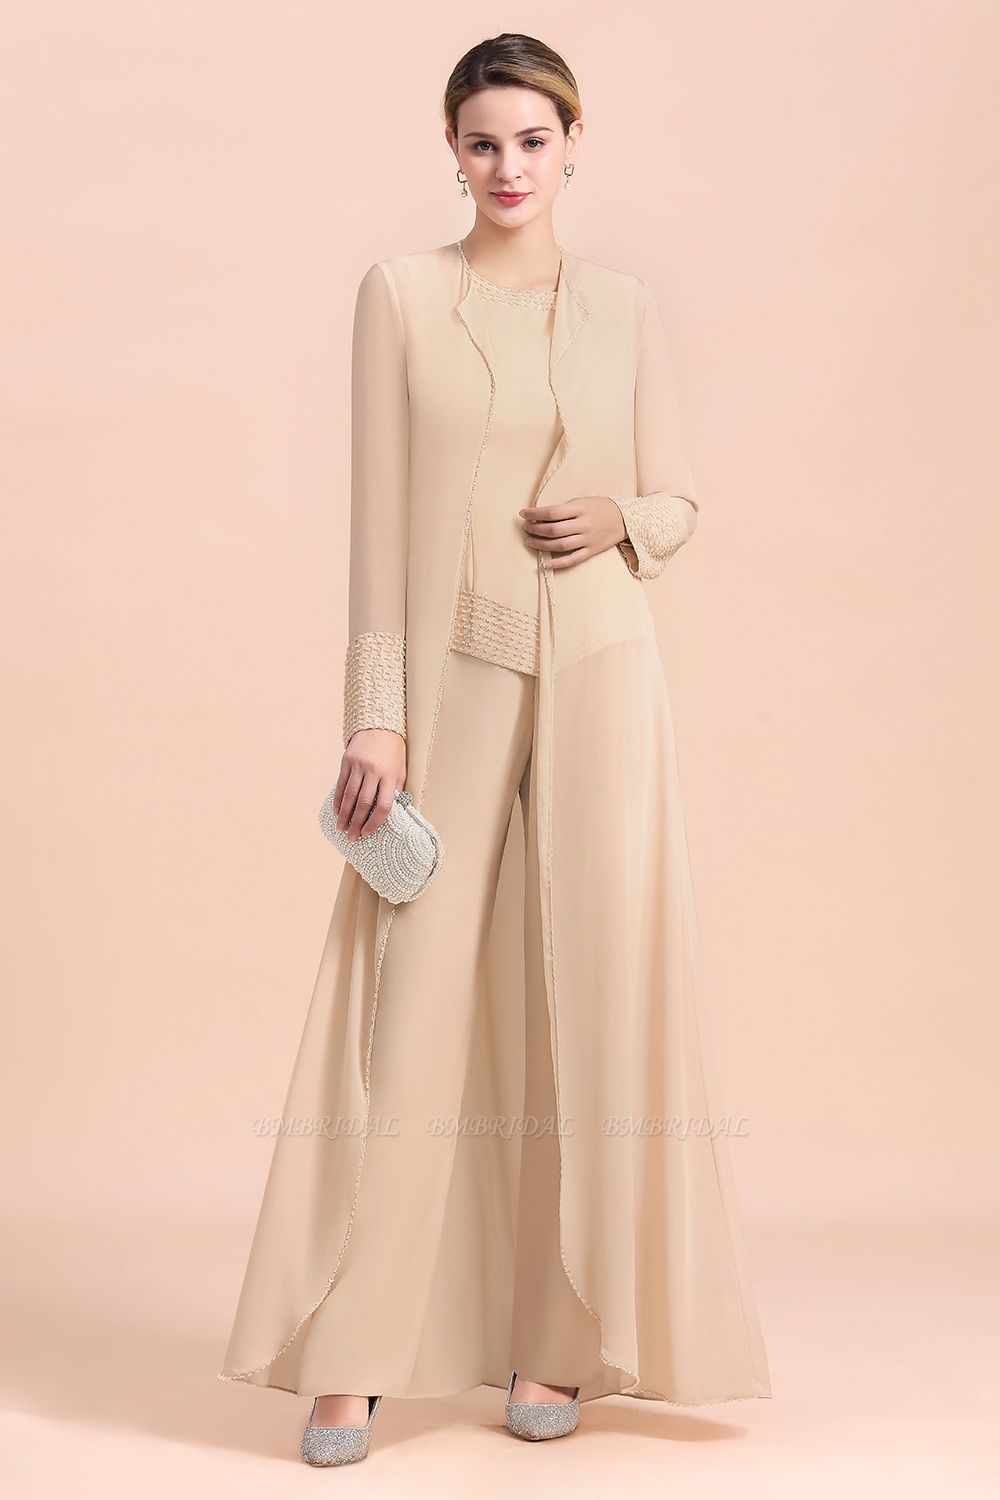 Champagne Long Chiffon Mother of the Bride Dress Two Pieces With Jacket